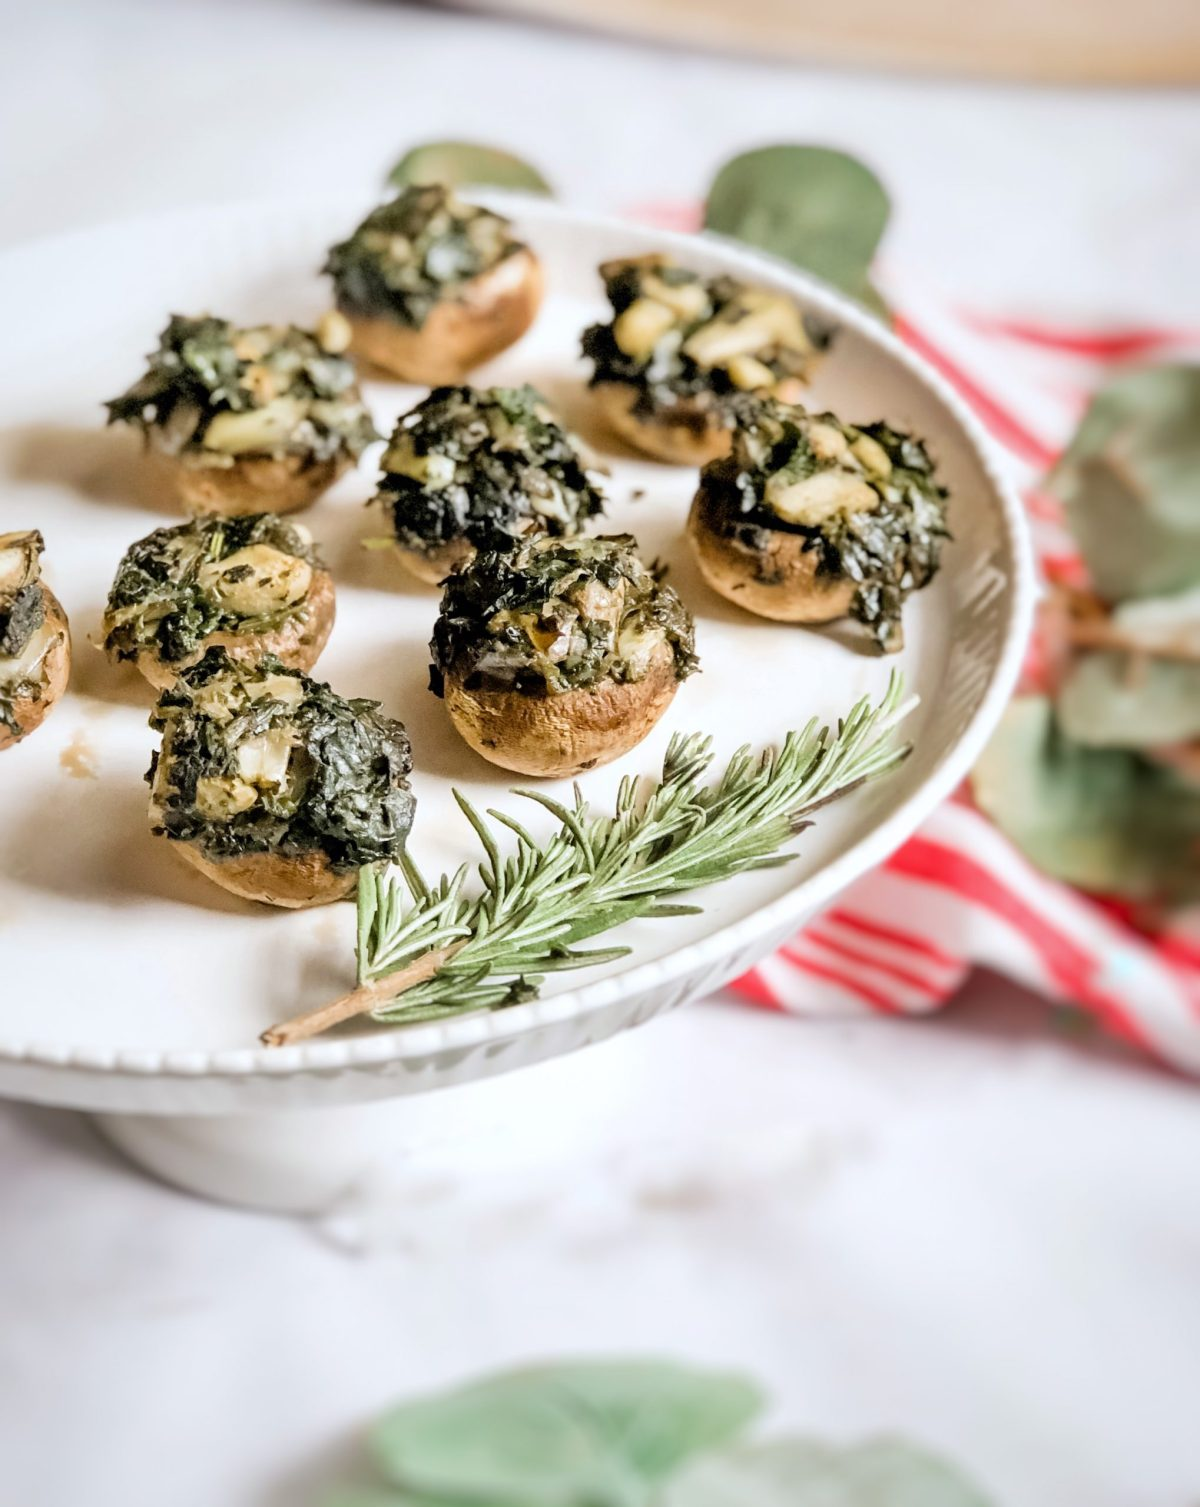 Paleo Spinach Artichoke Stuffed Mushrooms